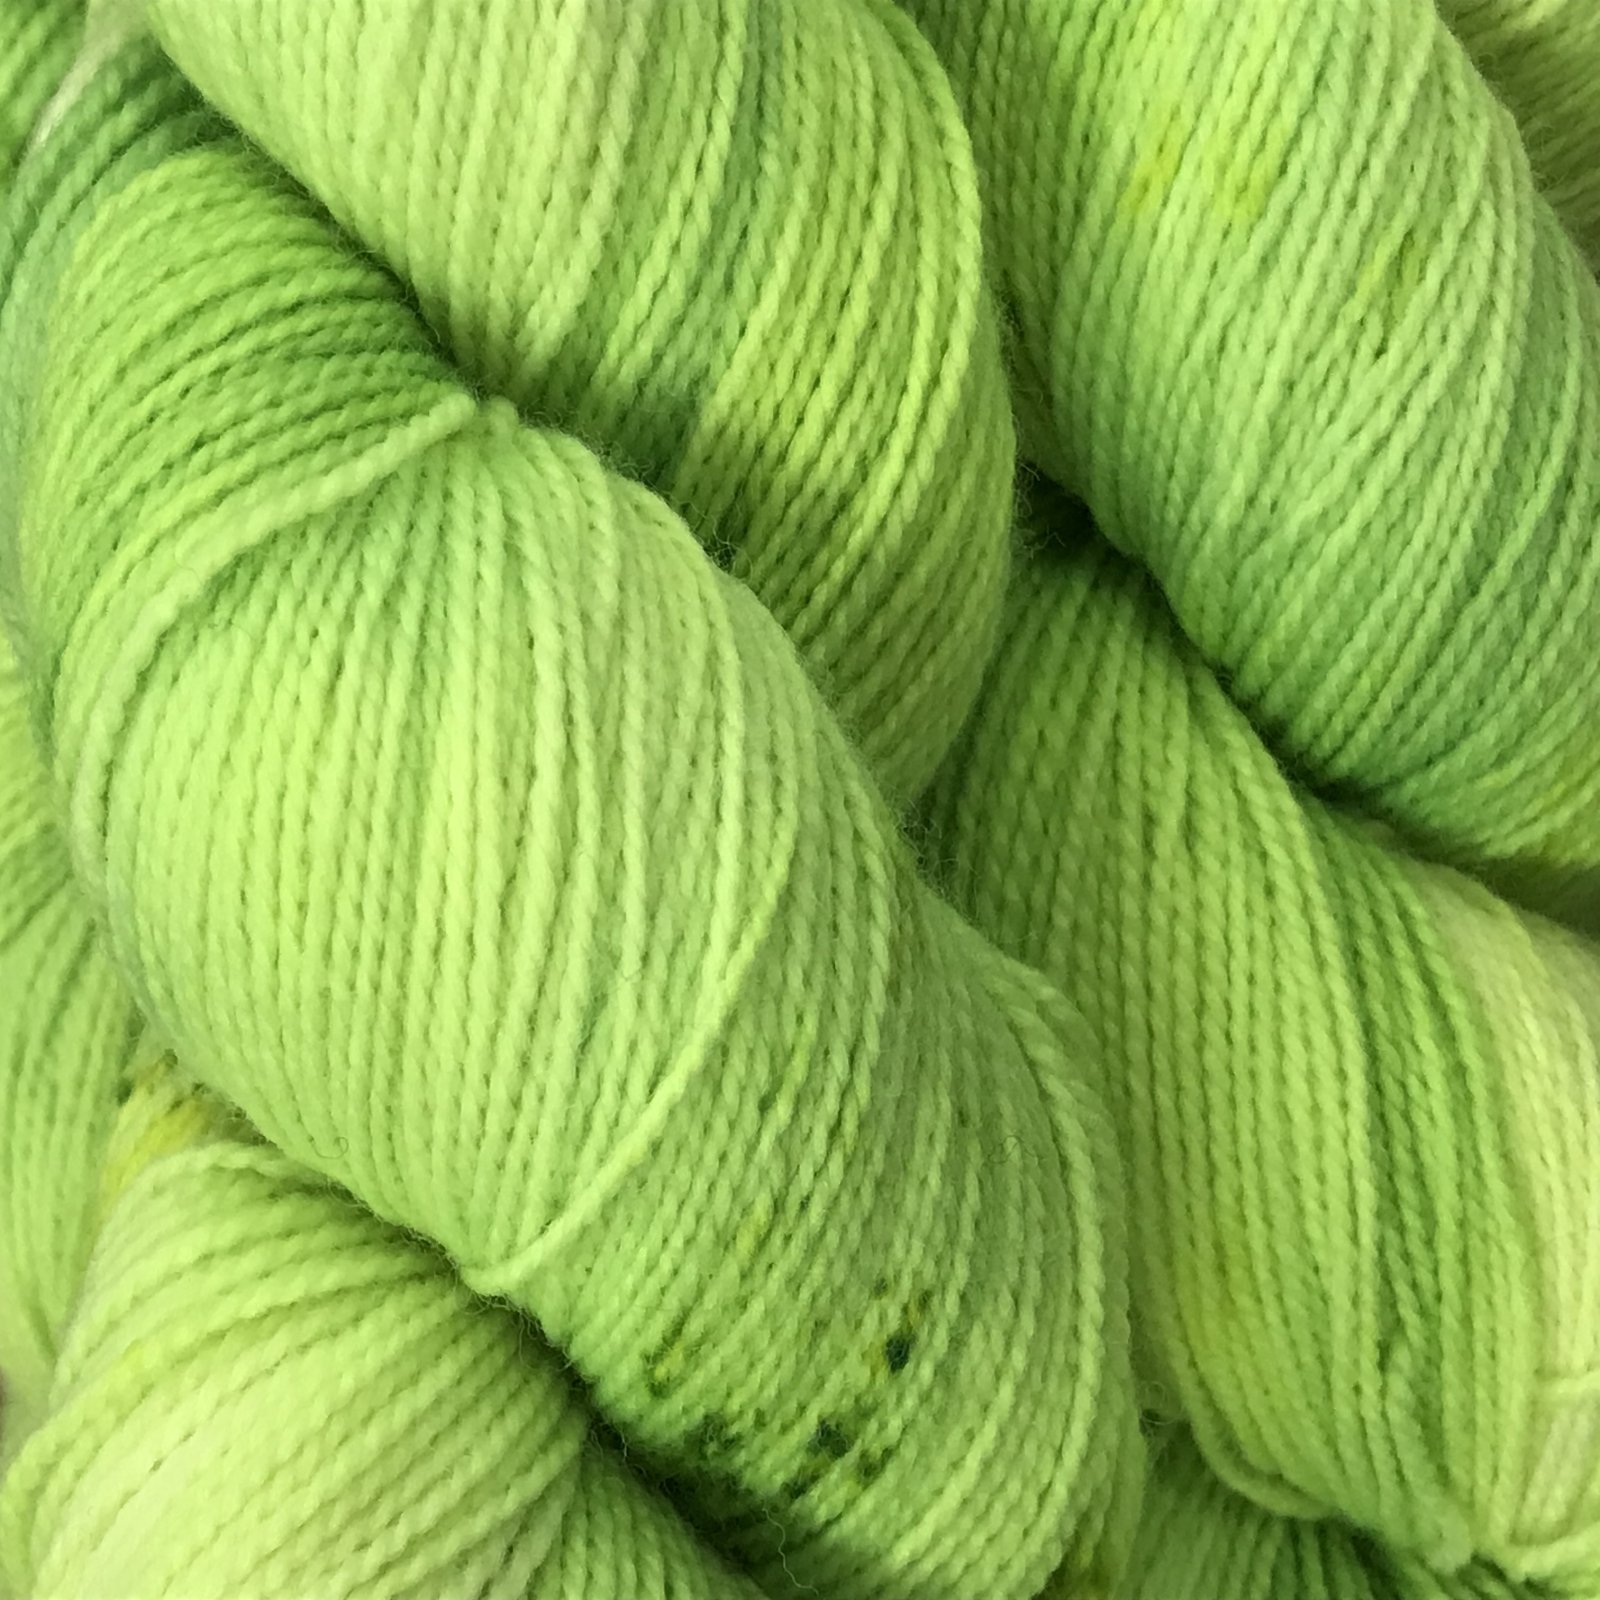 Stitch Together - Twisted Sock - Radioactive Ooze